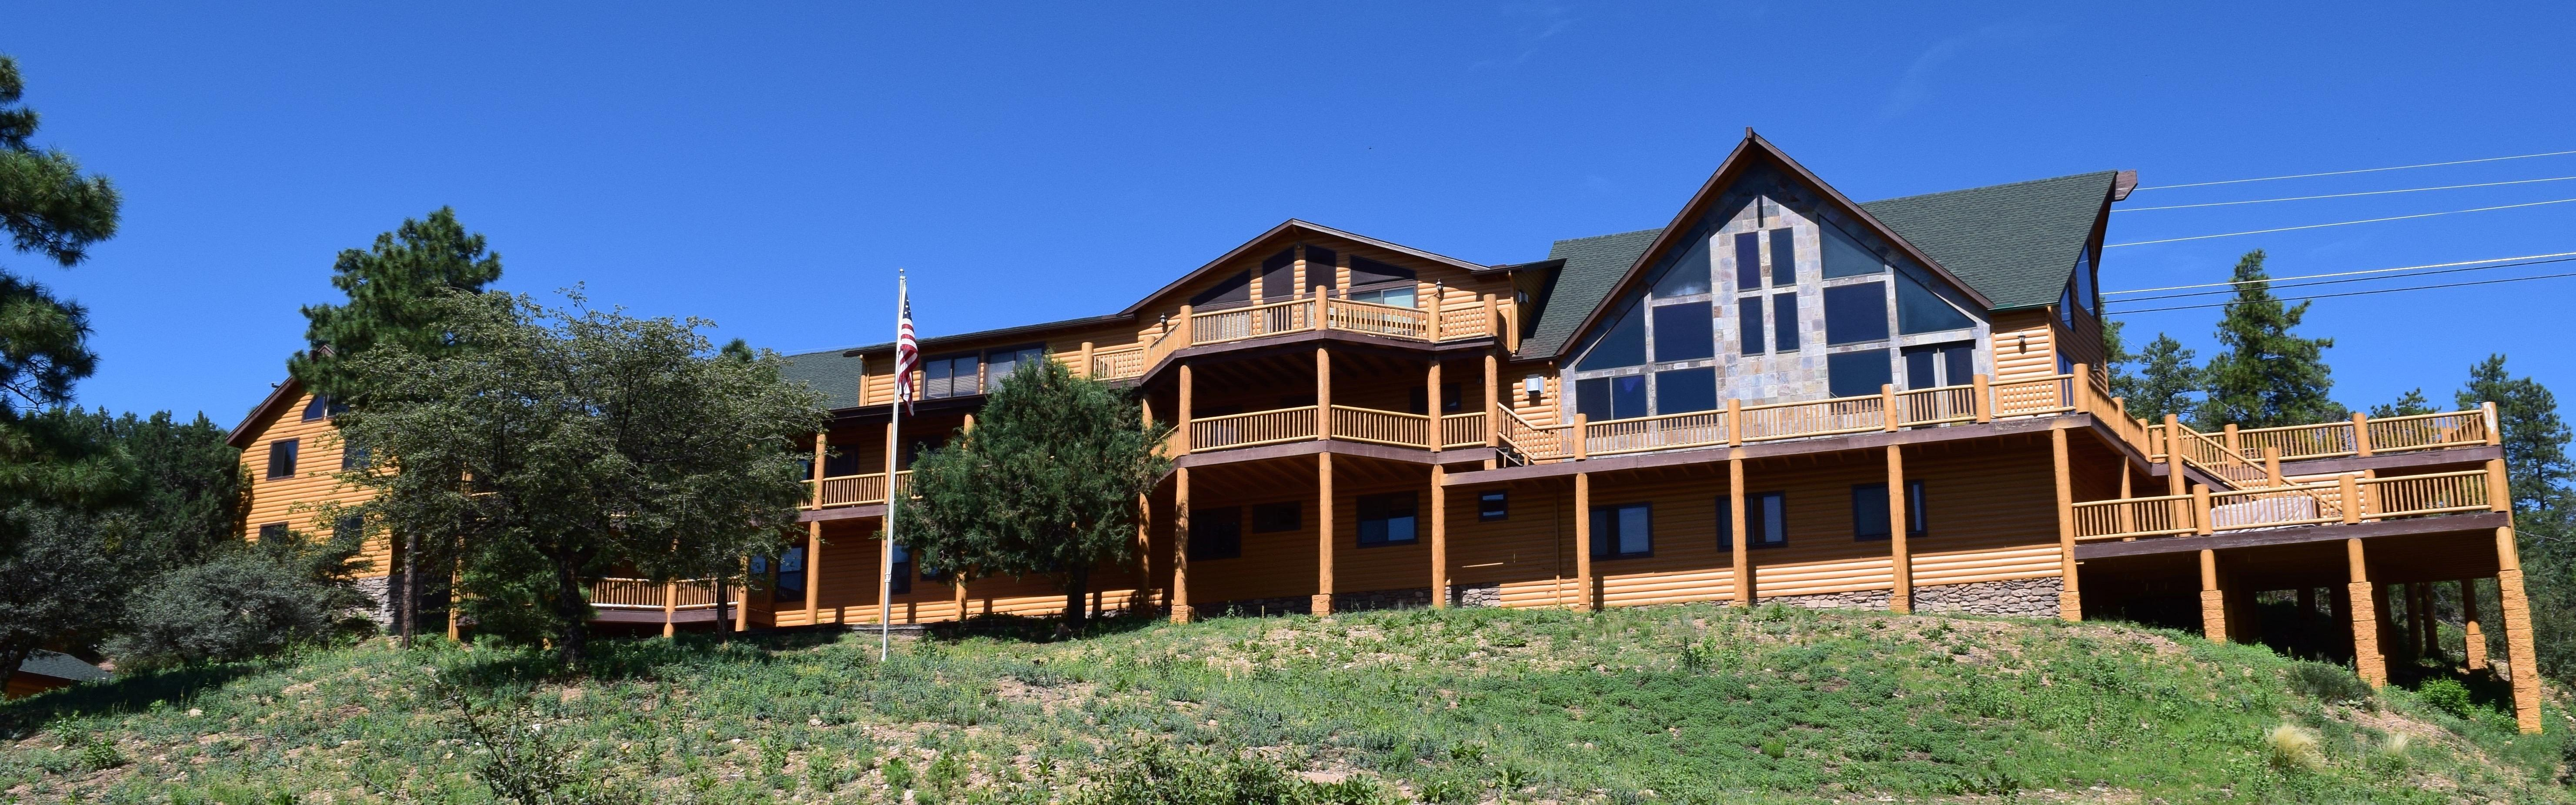 Arrowhead Lodge image 3